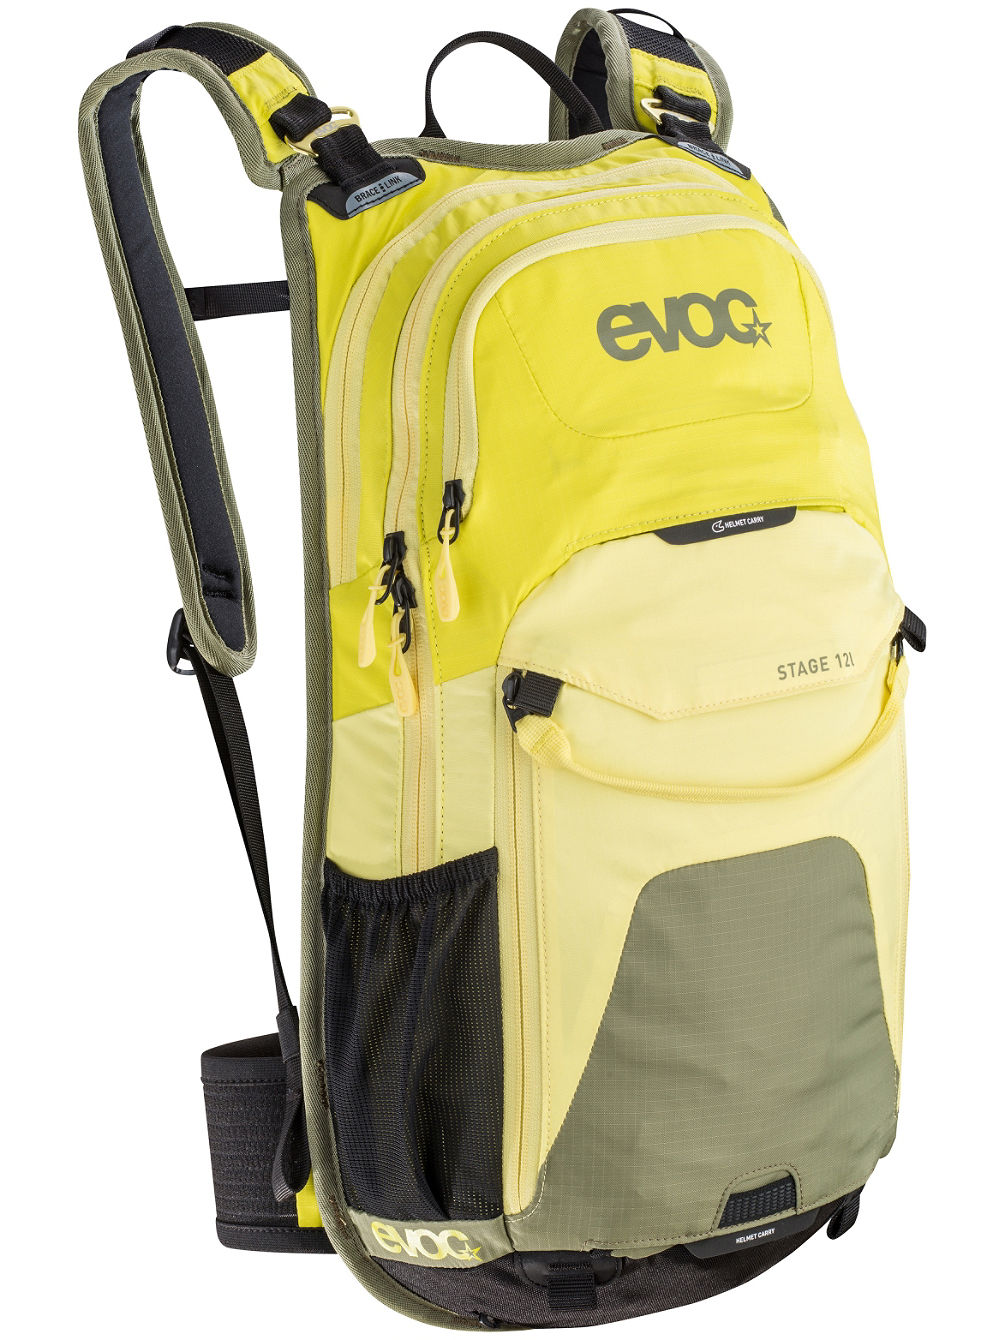 Stage 12L Backpack